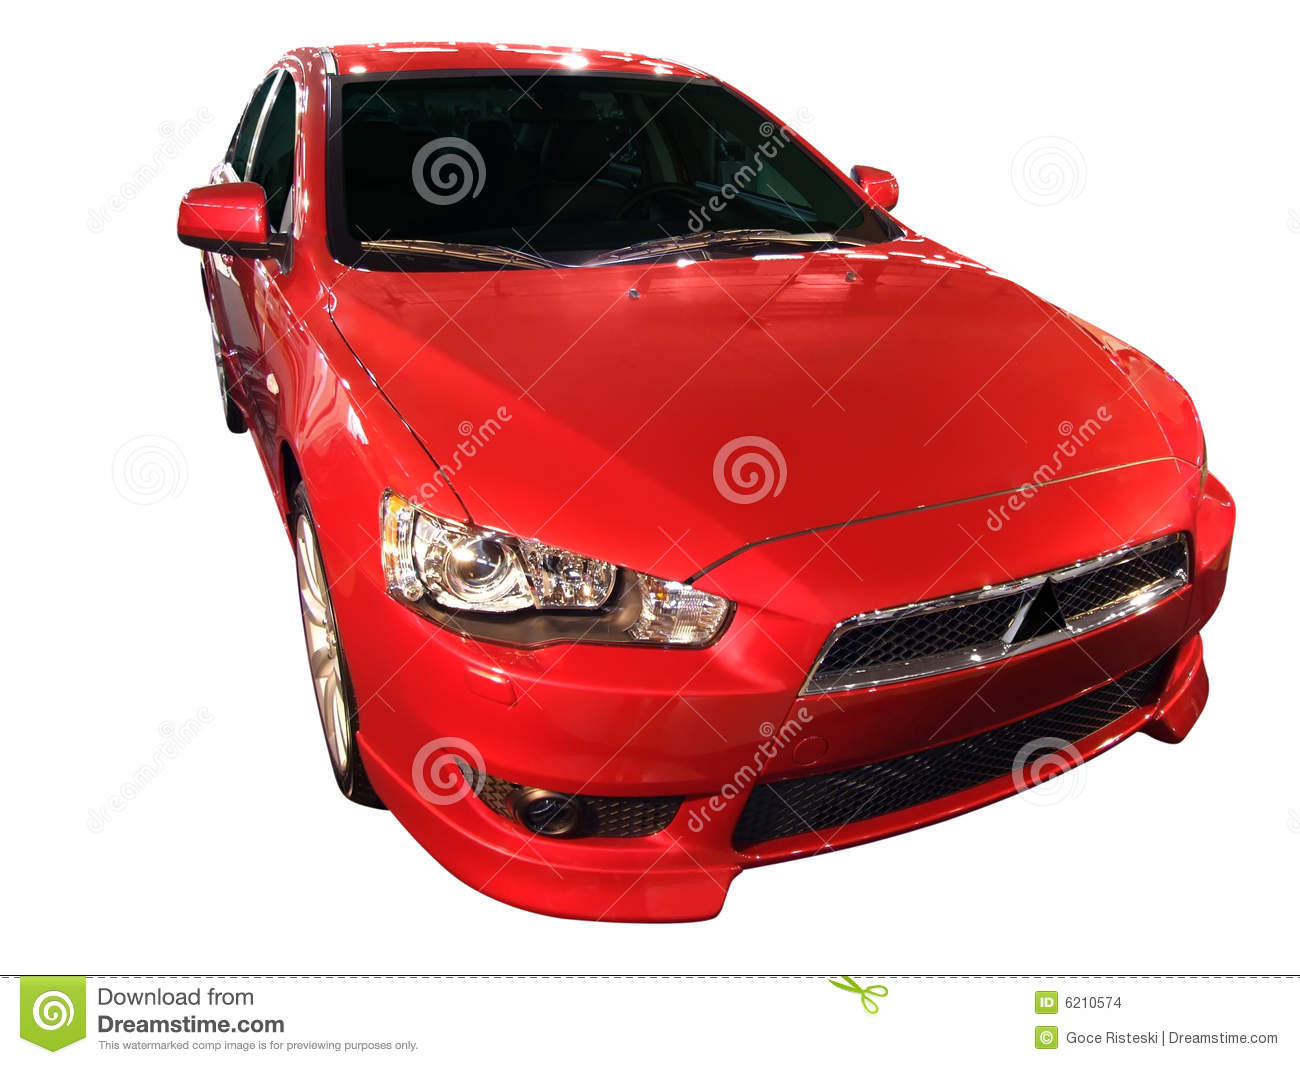 Fast red car